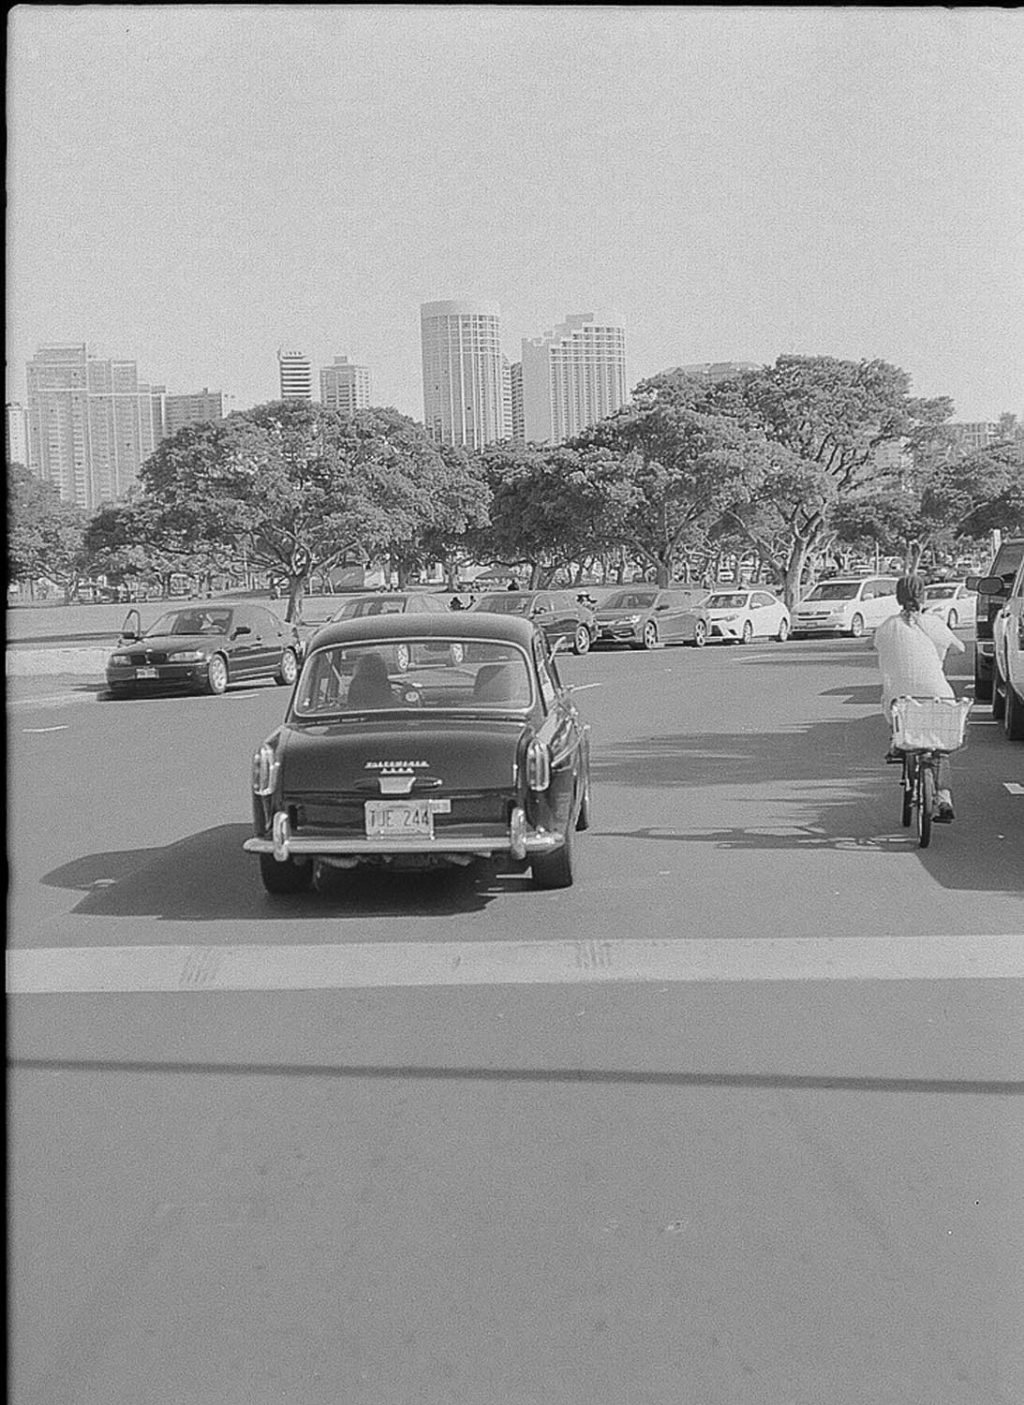 The hardest shot I've ever taken. I had to chase this car down on my skateboard to get this shot. This is Honolulu, Hawaii near the beach walk.